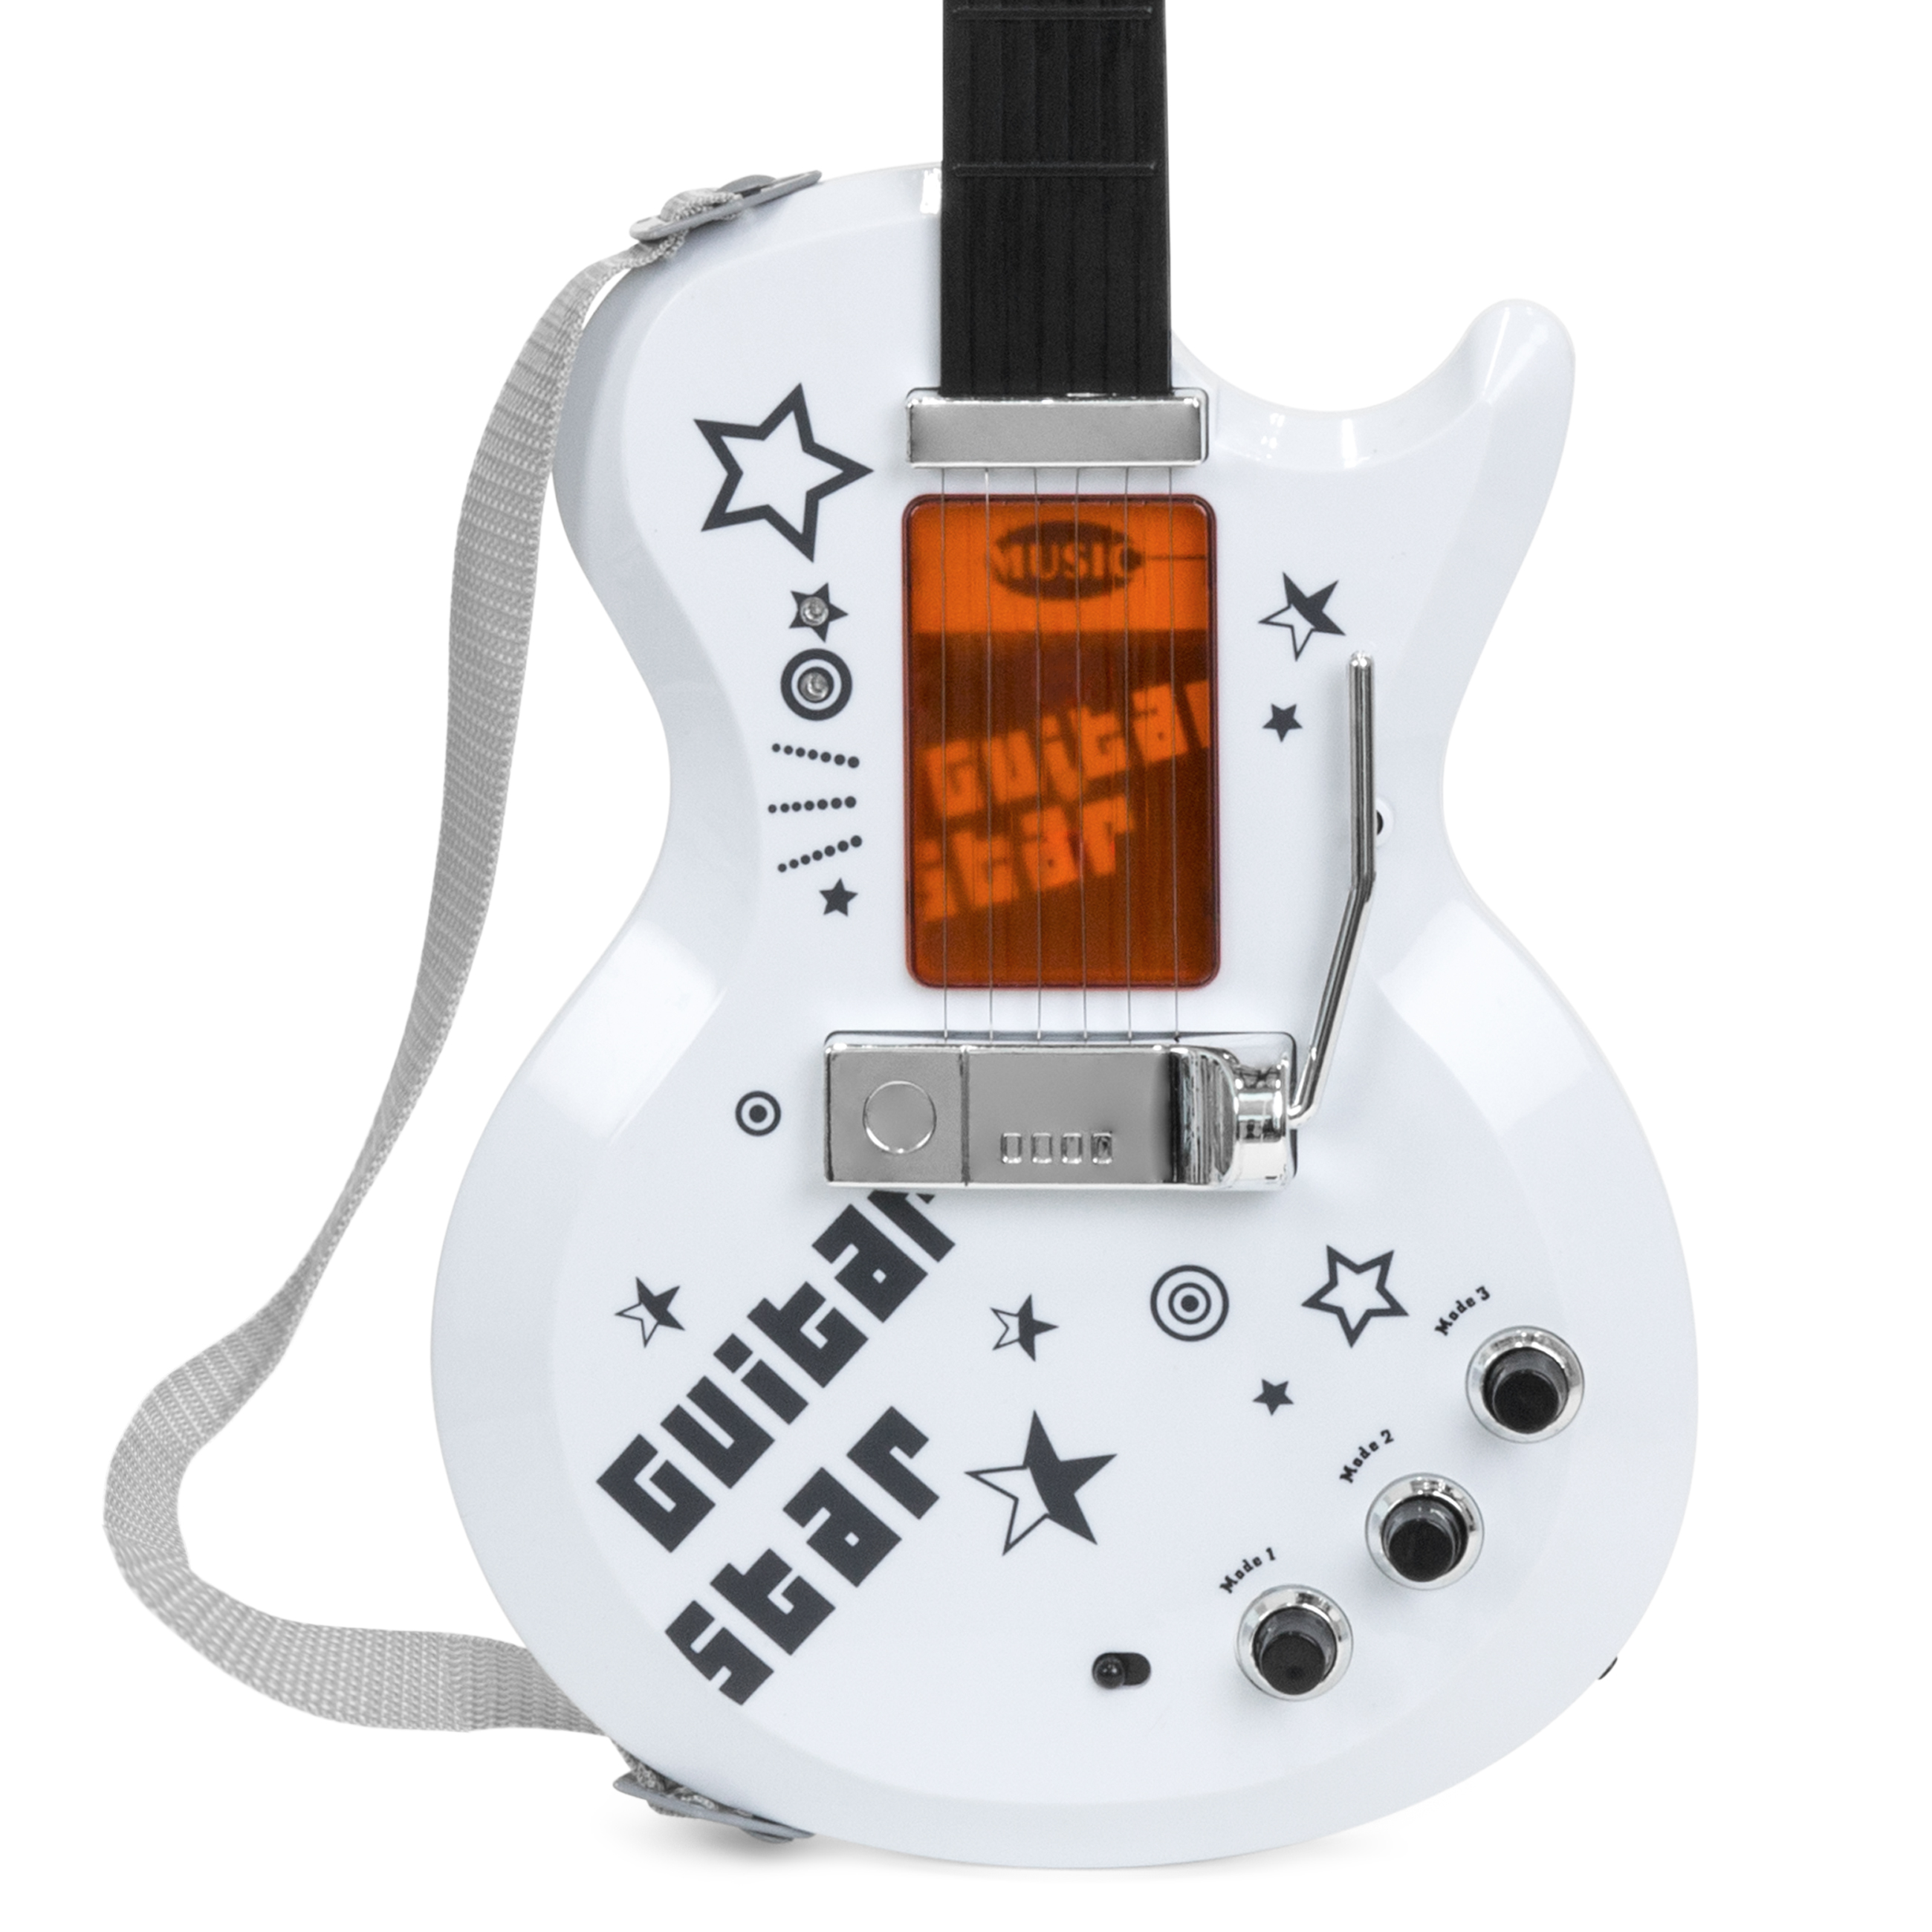 BCP-Kids-Electric-Guitar-Toy-Play-Set-w-6-Songs-Microphone-Amp thumbnail 21